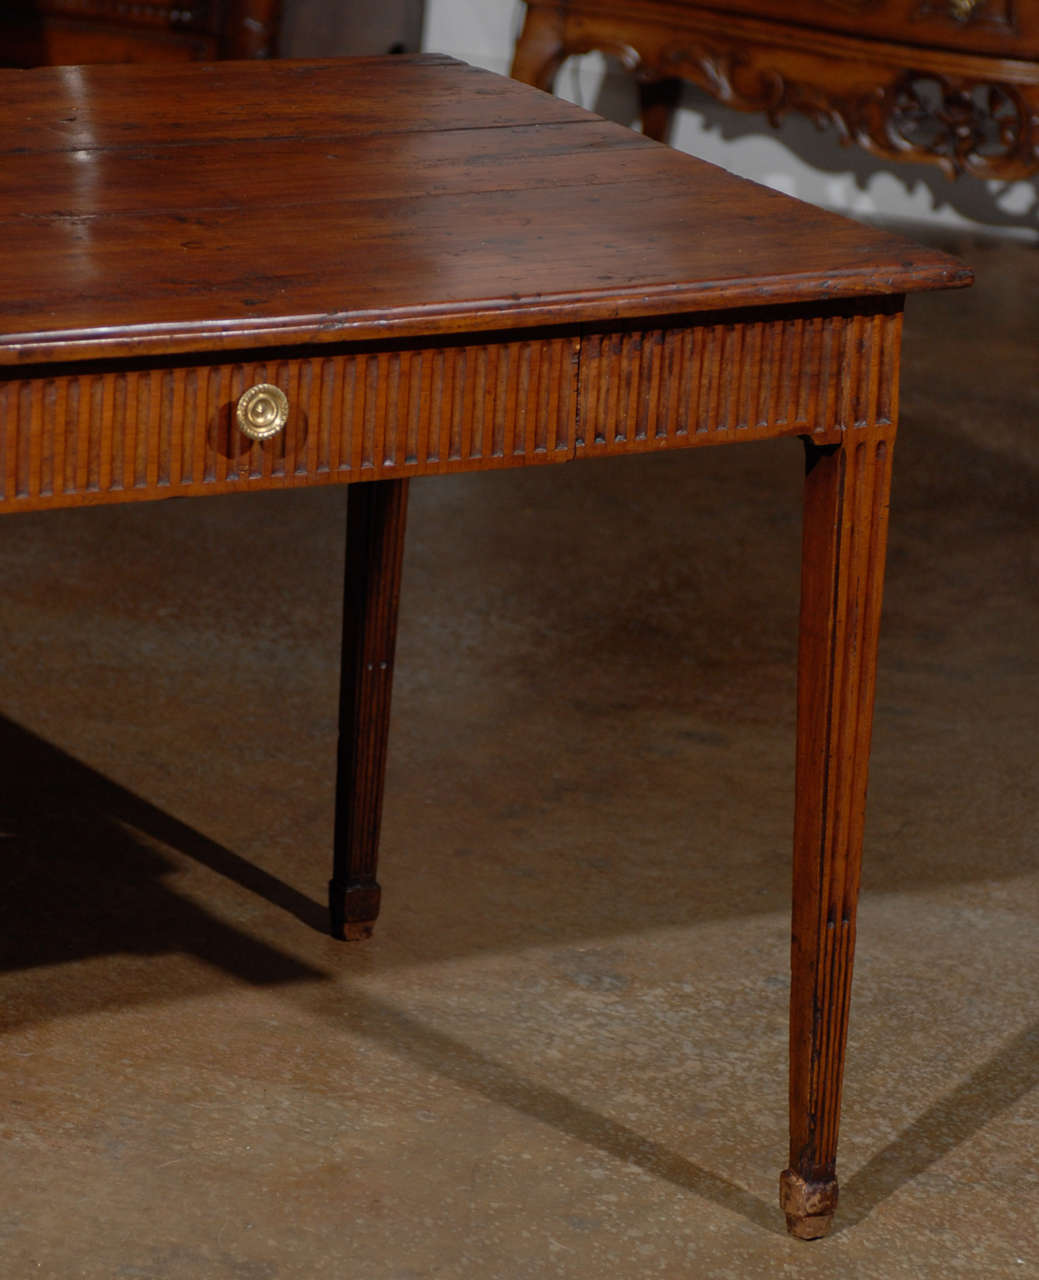 Louis XVI Period French Late 18th Century Side Table with Fluted Tapering Legs For Sale 1